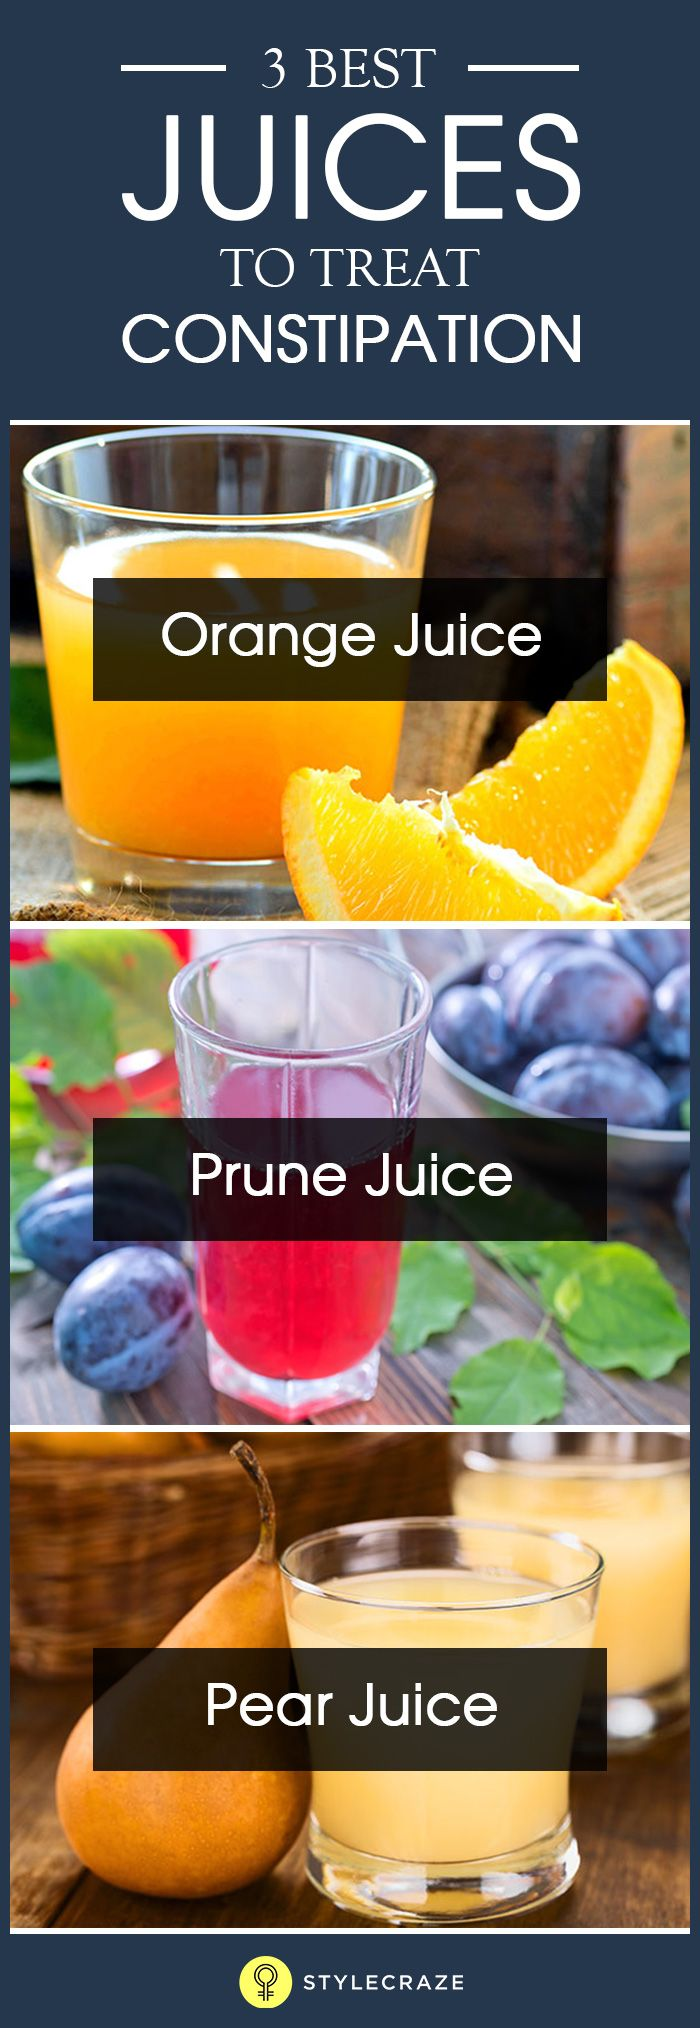 5 Best Juices To Treat Constipation recommend